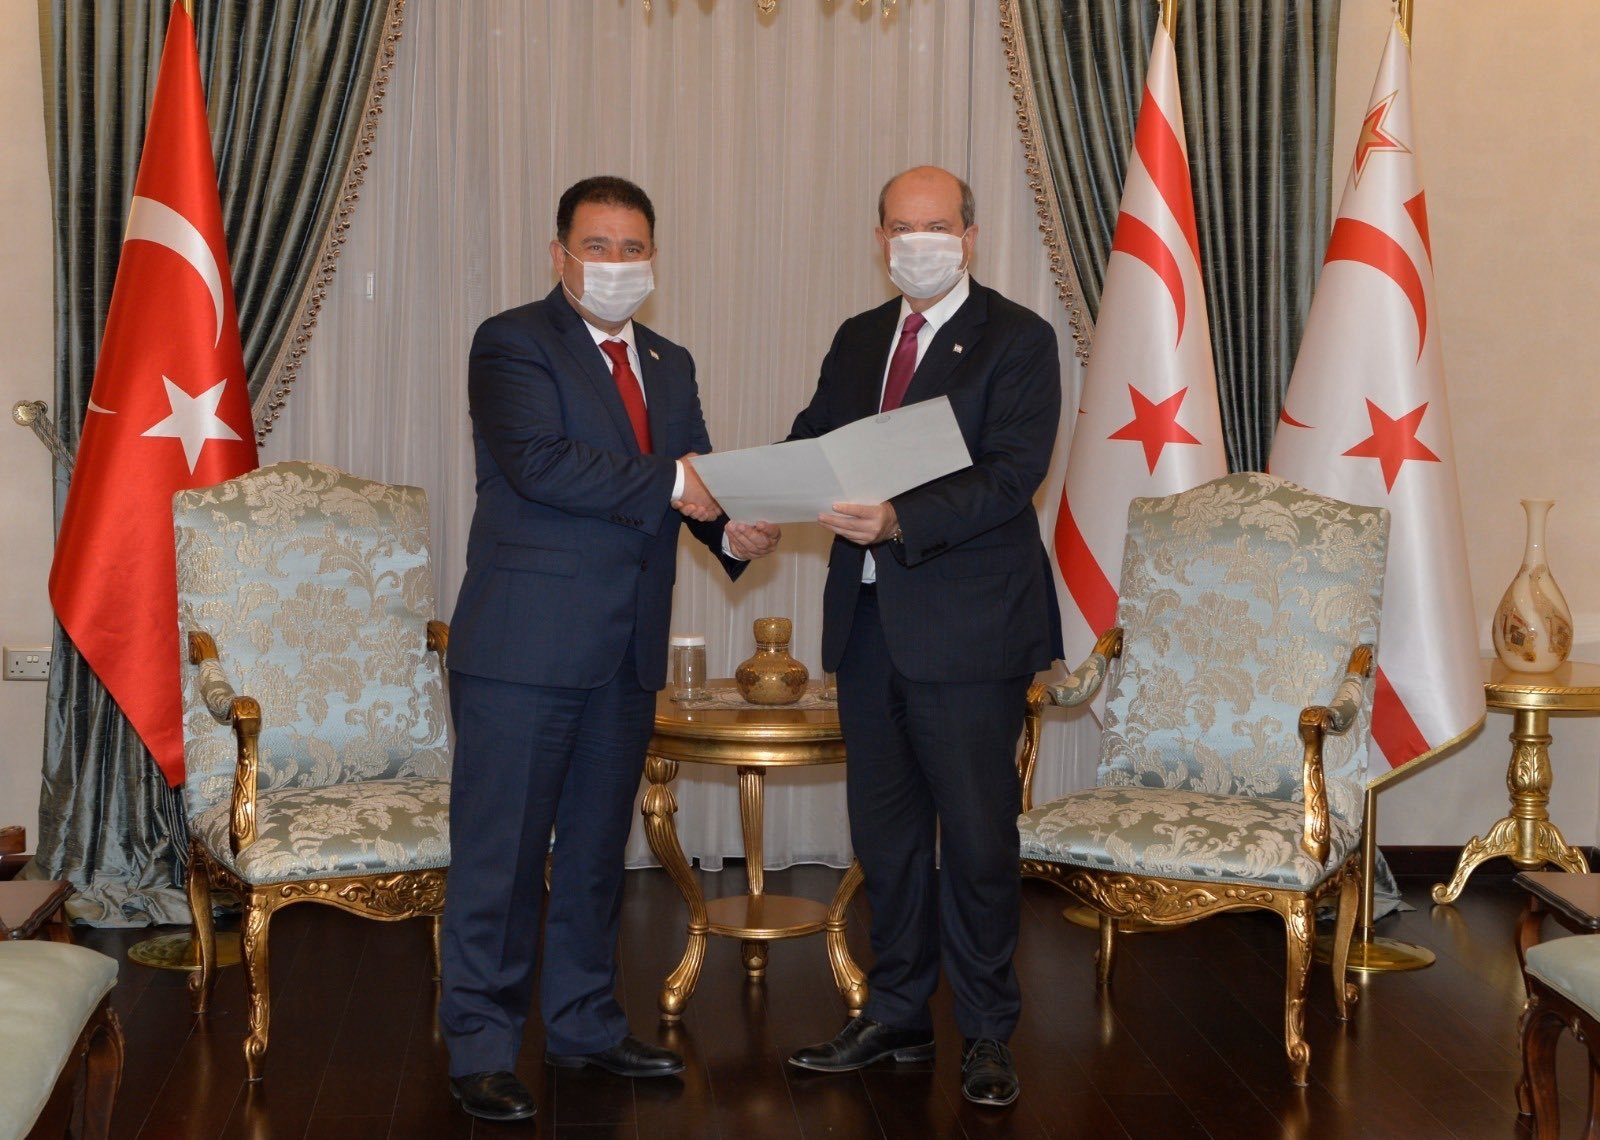 The leader of the Turkish Republic of Northern Cyprus (TRNC) Ersin Tatar (R) assigns the task of forming a new government to the leader of the National Unity Party (UBP) Ersan Saner at the presidency in Lefkoşa (Nicosia), TRNC, Dec. 7, 2020. (AA Photo)